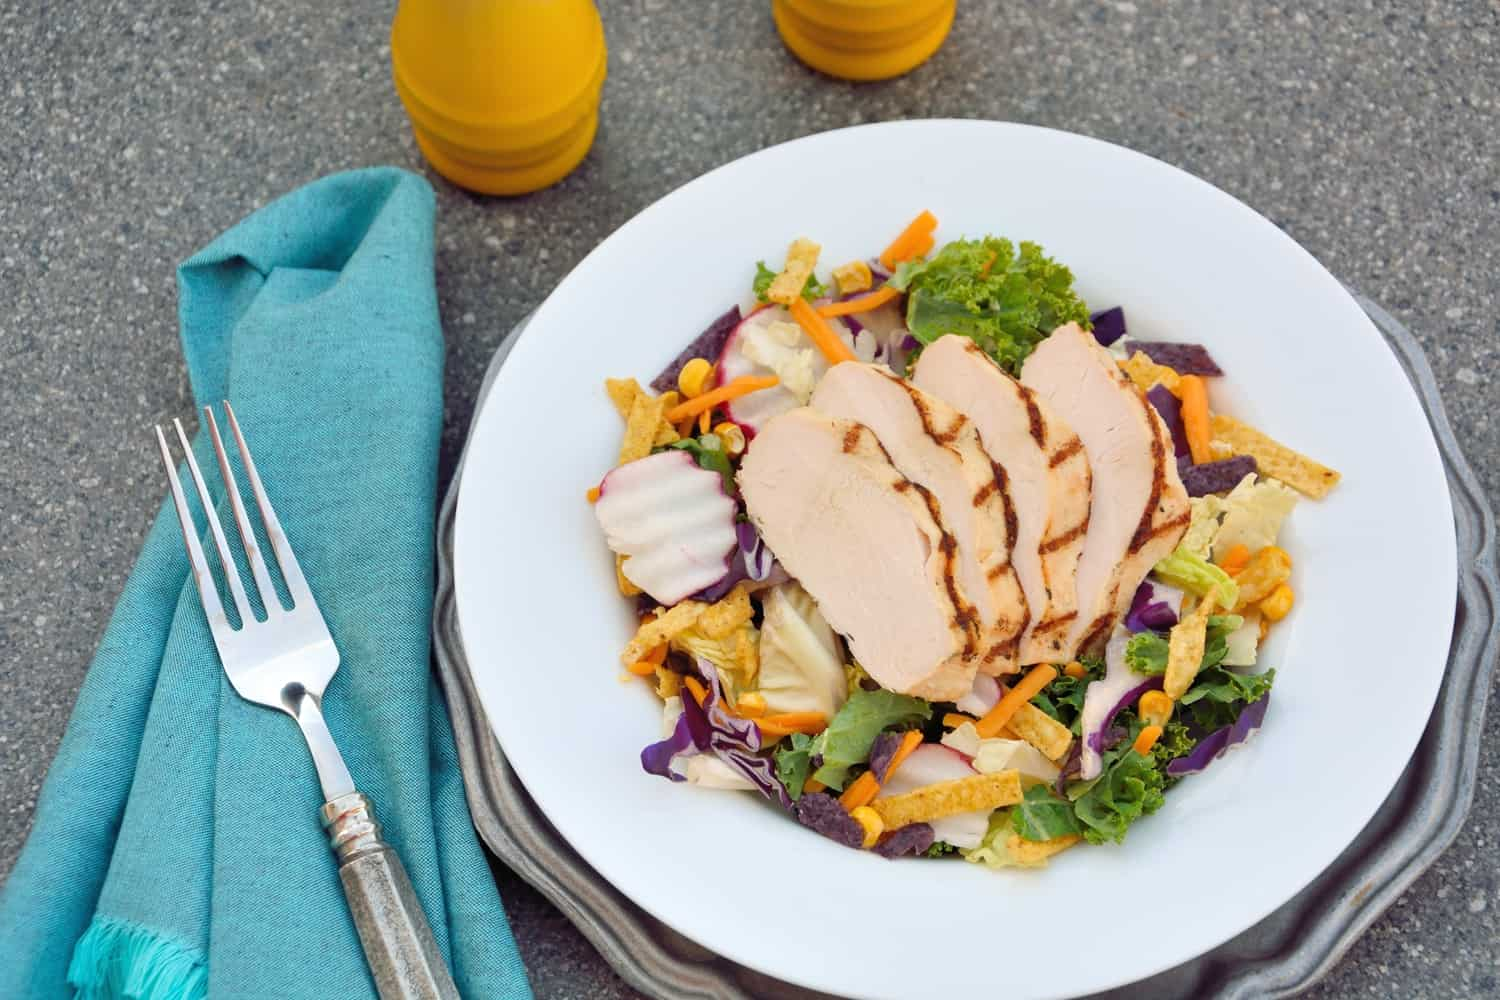 Southwest Salad with Citrus Chicken- a quick, healthy and gourmet salad with savory cabbage, red cabbage, radishes, carrots, and kale with a tangy chipotle ranch dressing and shredded cheddar cheese and crunchy tortilla strips and citrus grilled chicken.